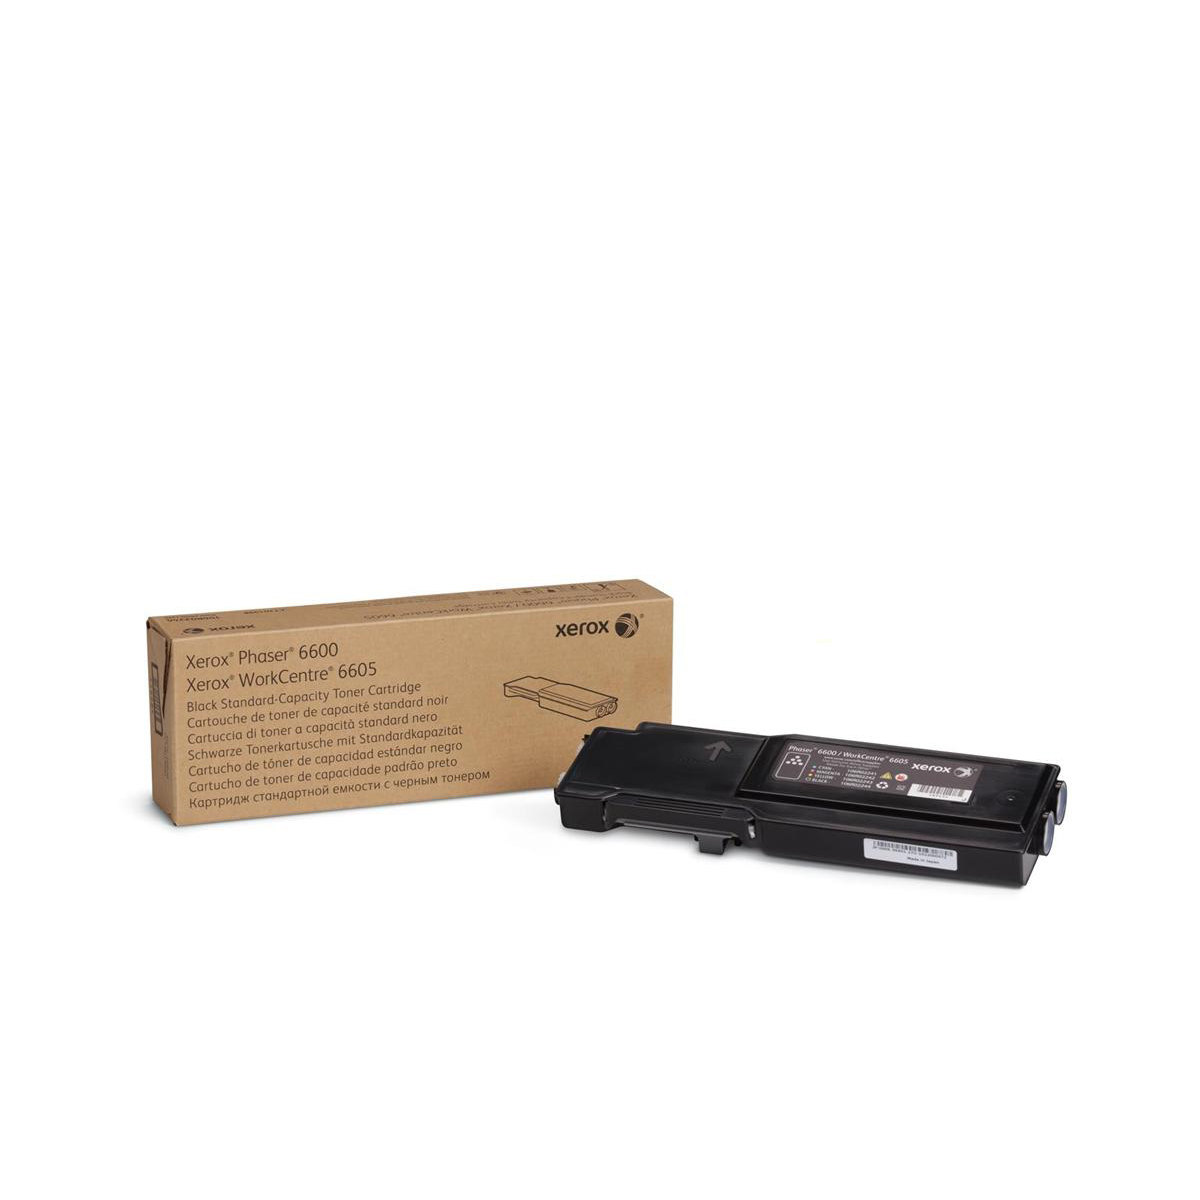 Laser Toner Cartridges Xerox Phaser 6600 Laser Toner Cartridge Page Life 3000pp Black Ref 106R02248